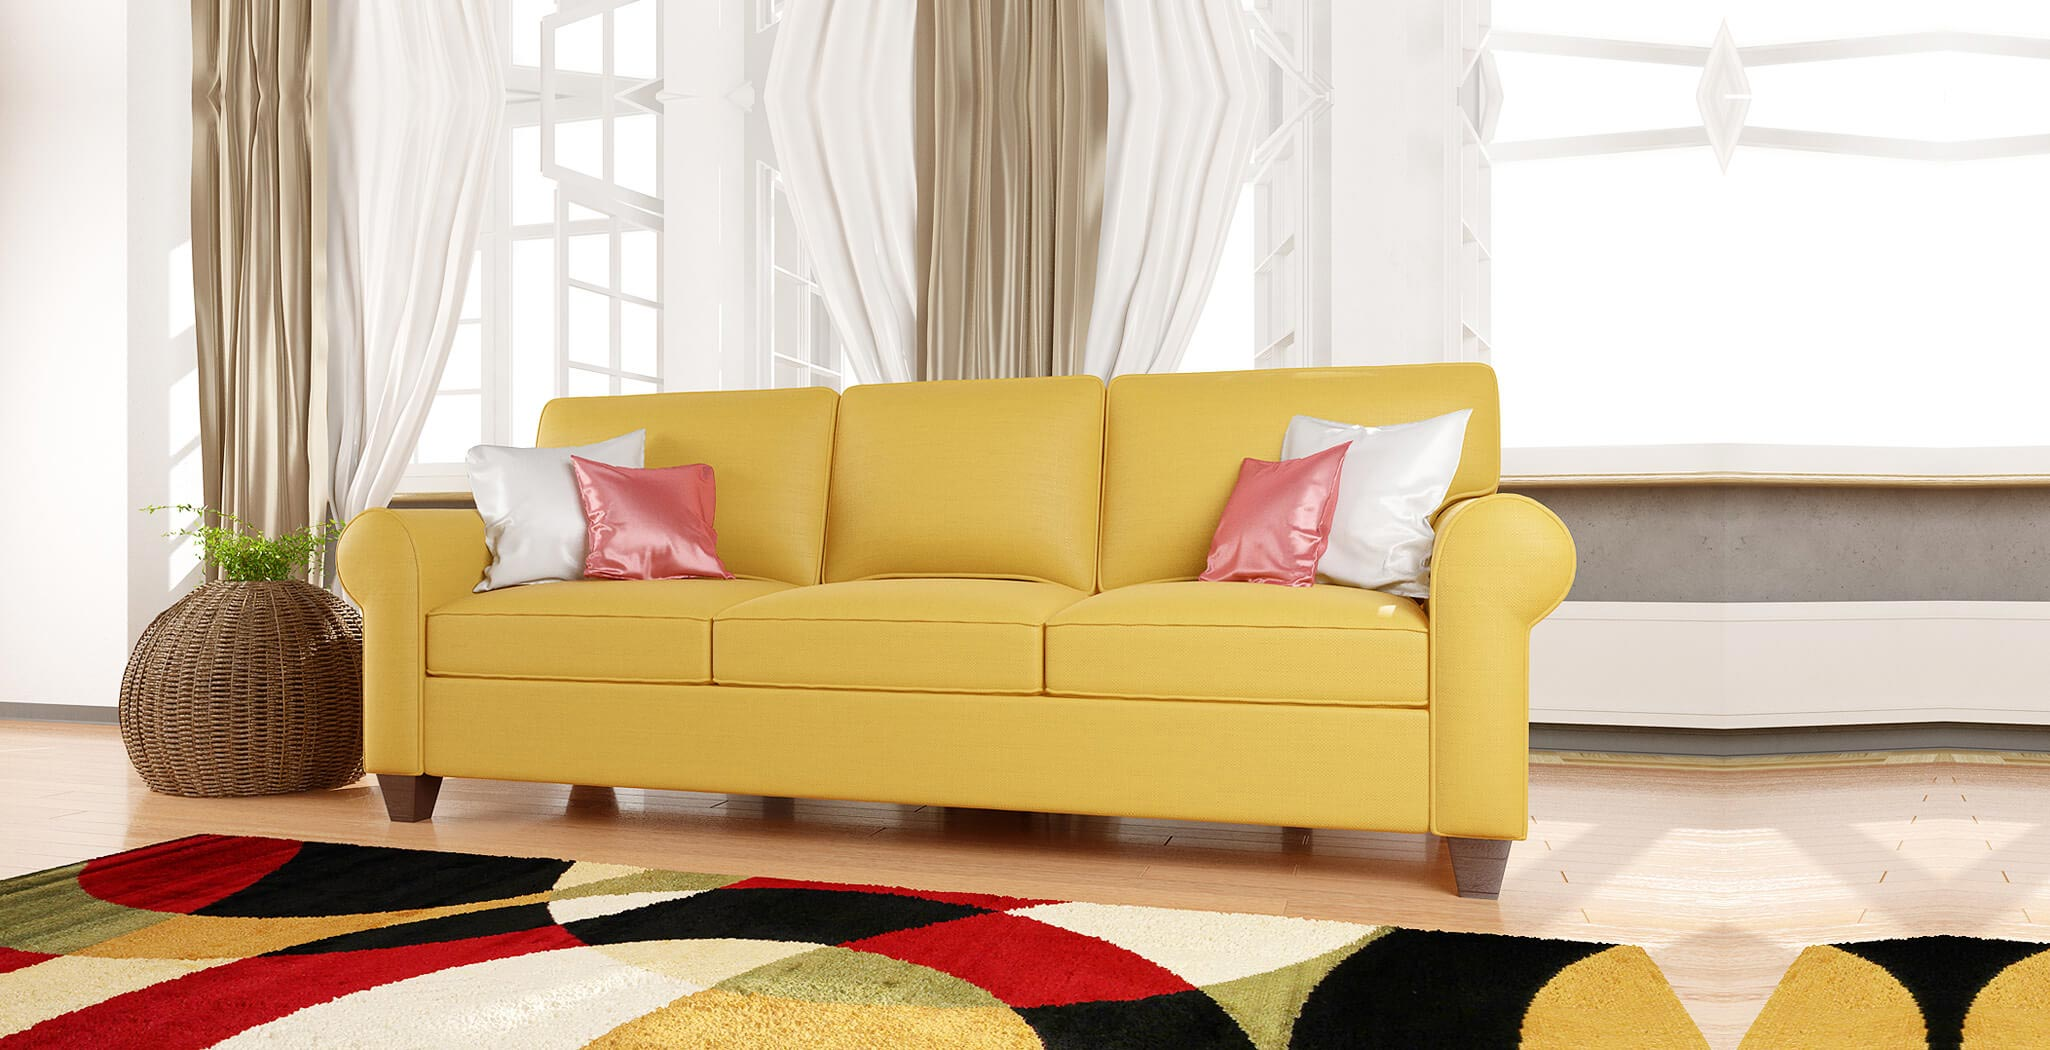 augusta sofa furniture gallery 5